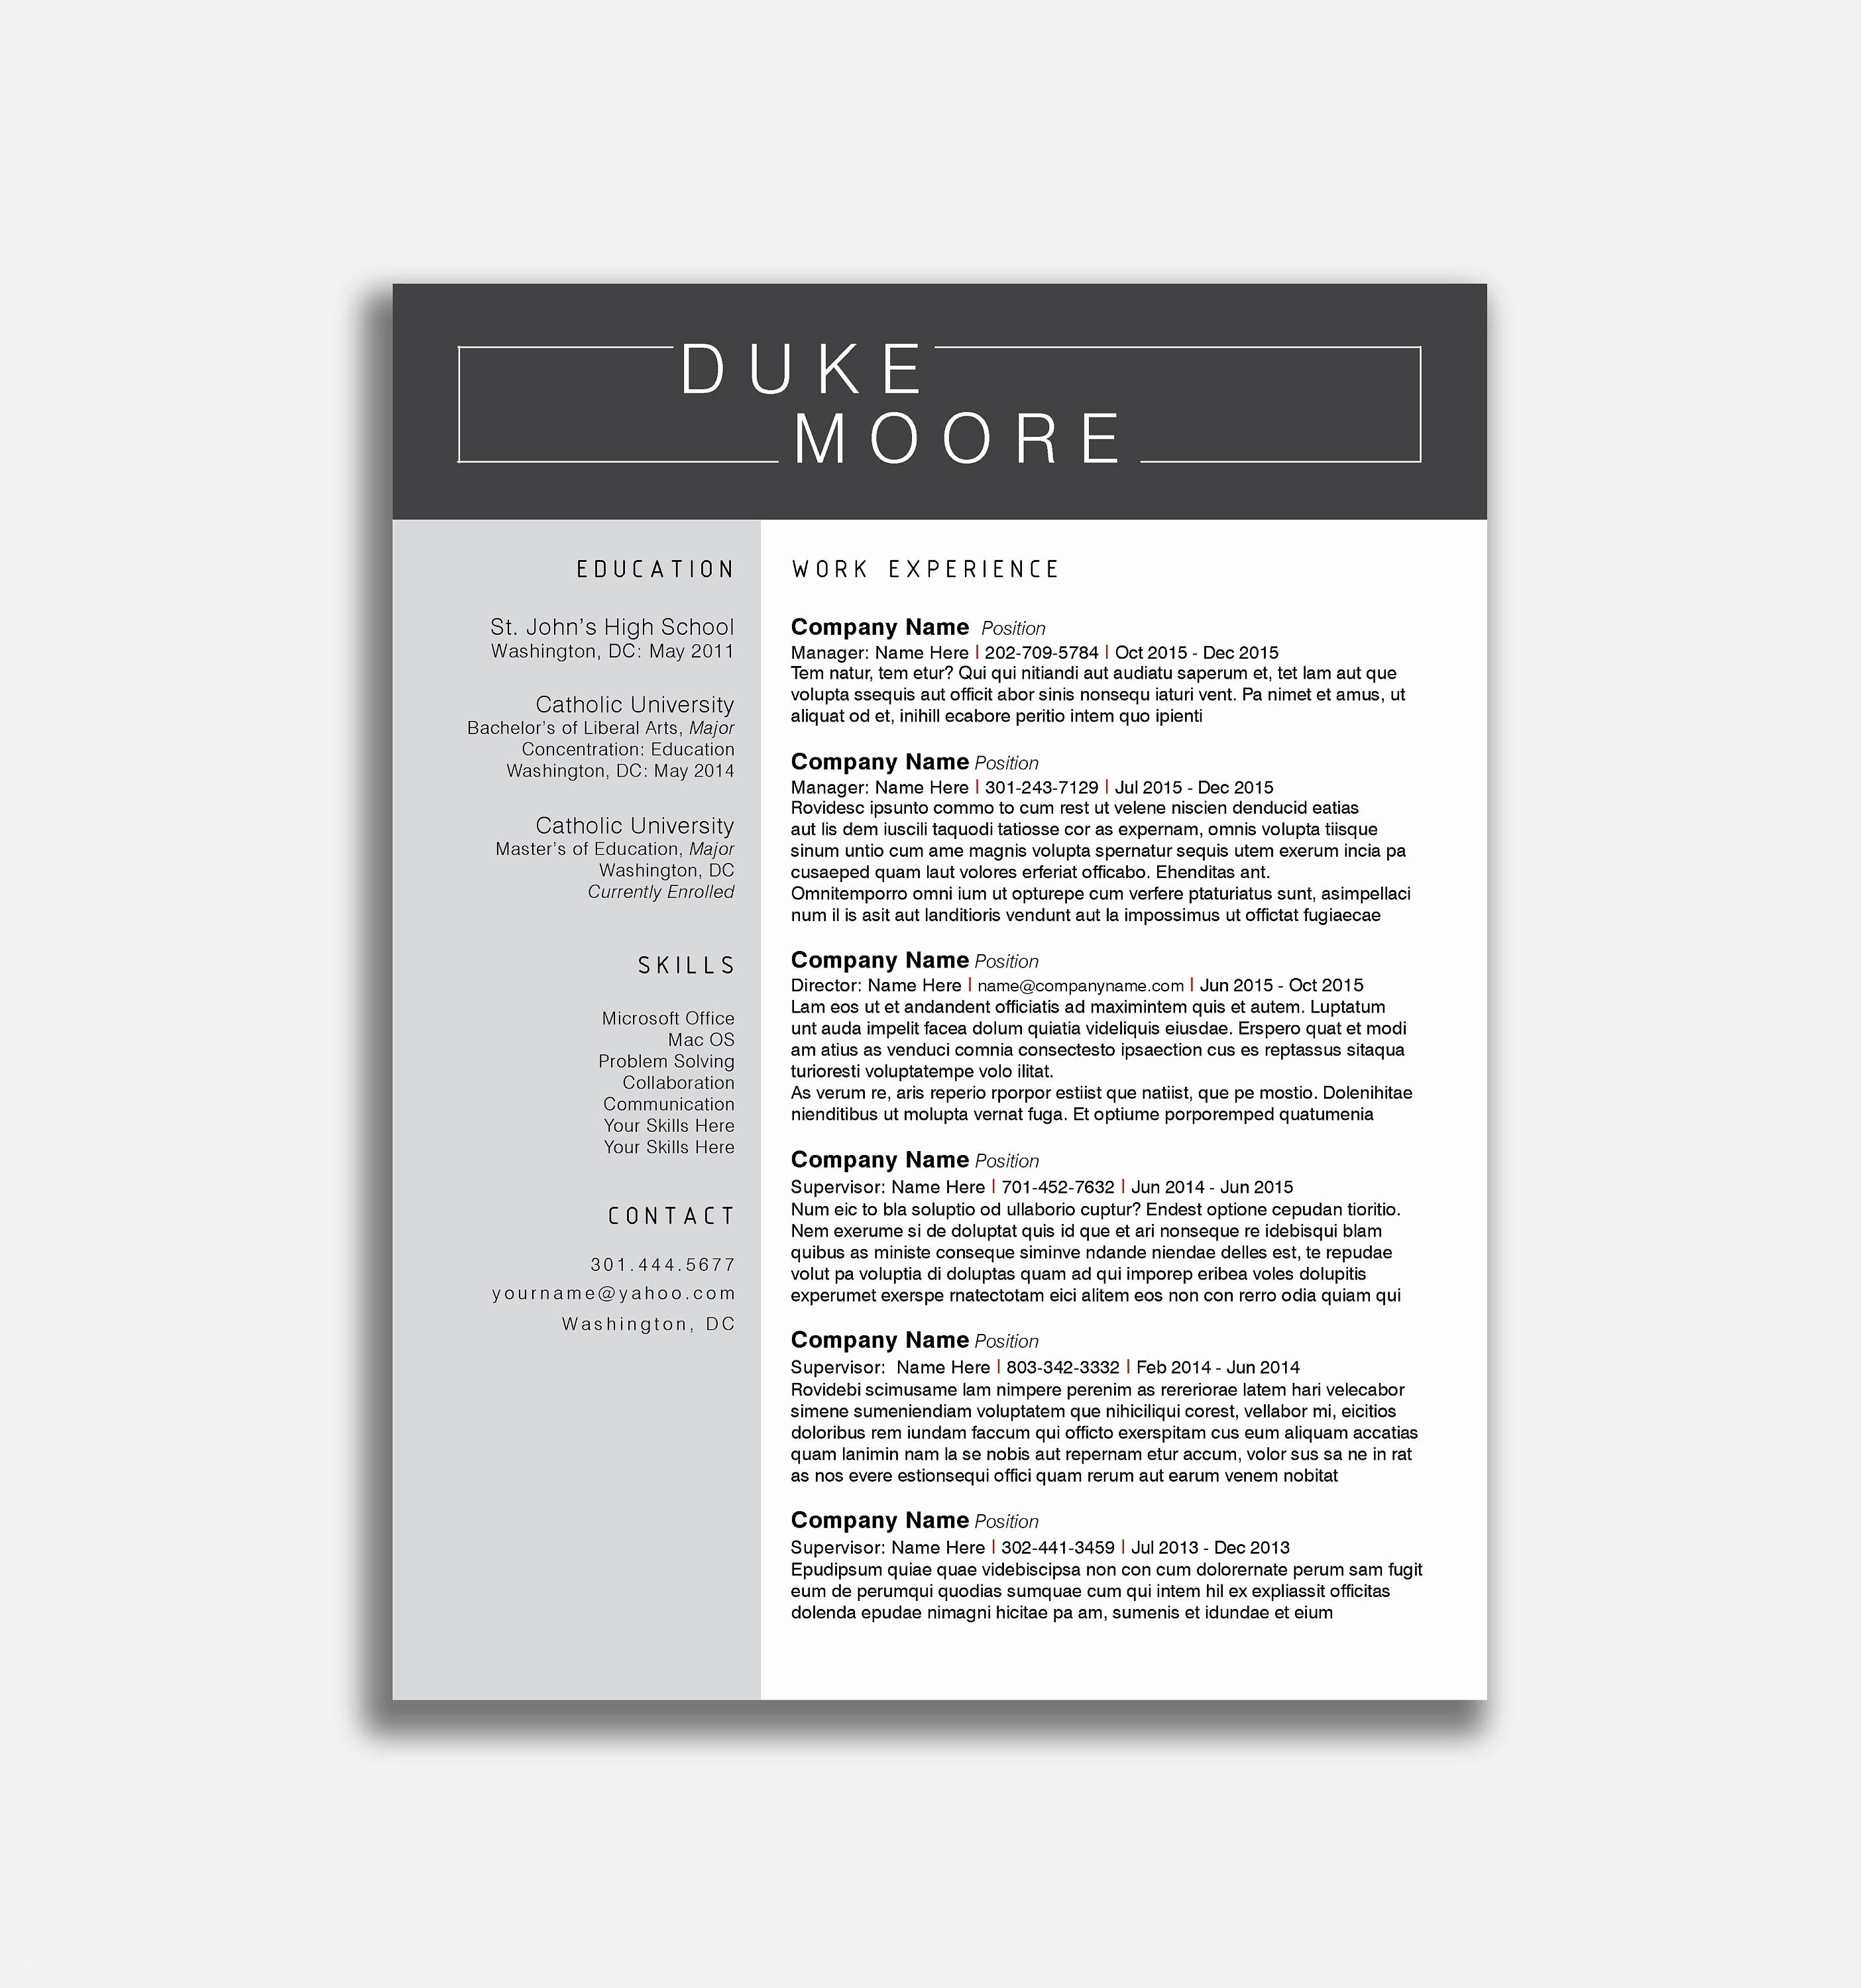 Resume Templates for Mac - Free Creative Resume Templates for Mac New Resume Template Microsoft